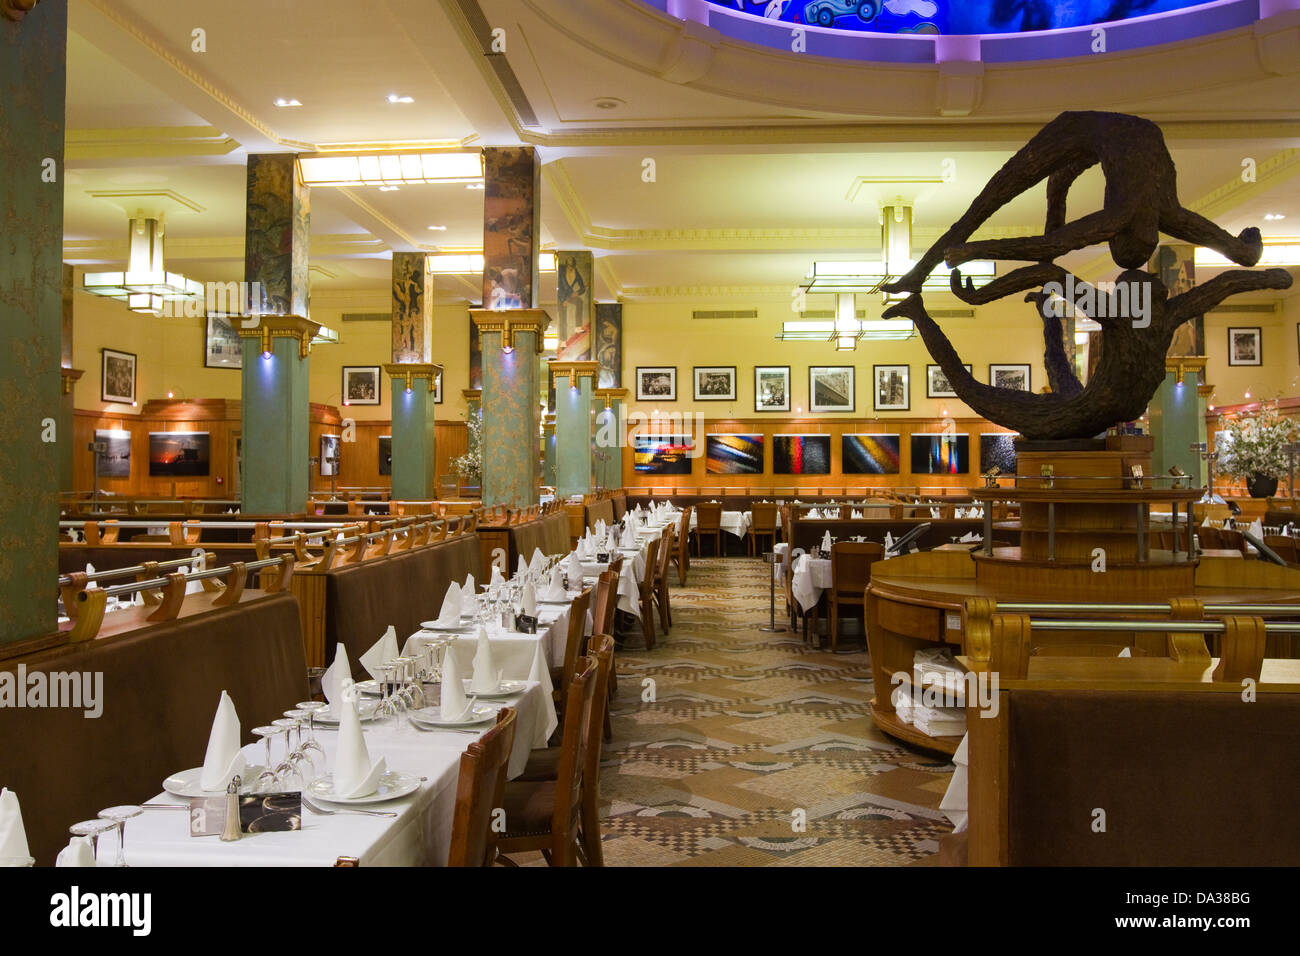 France Paris Art Deco Restaurant Stockfotos & France Paris Art Deco ...